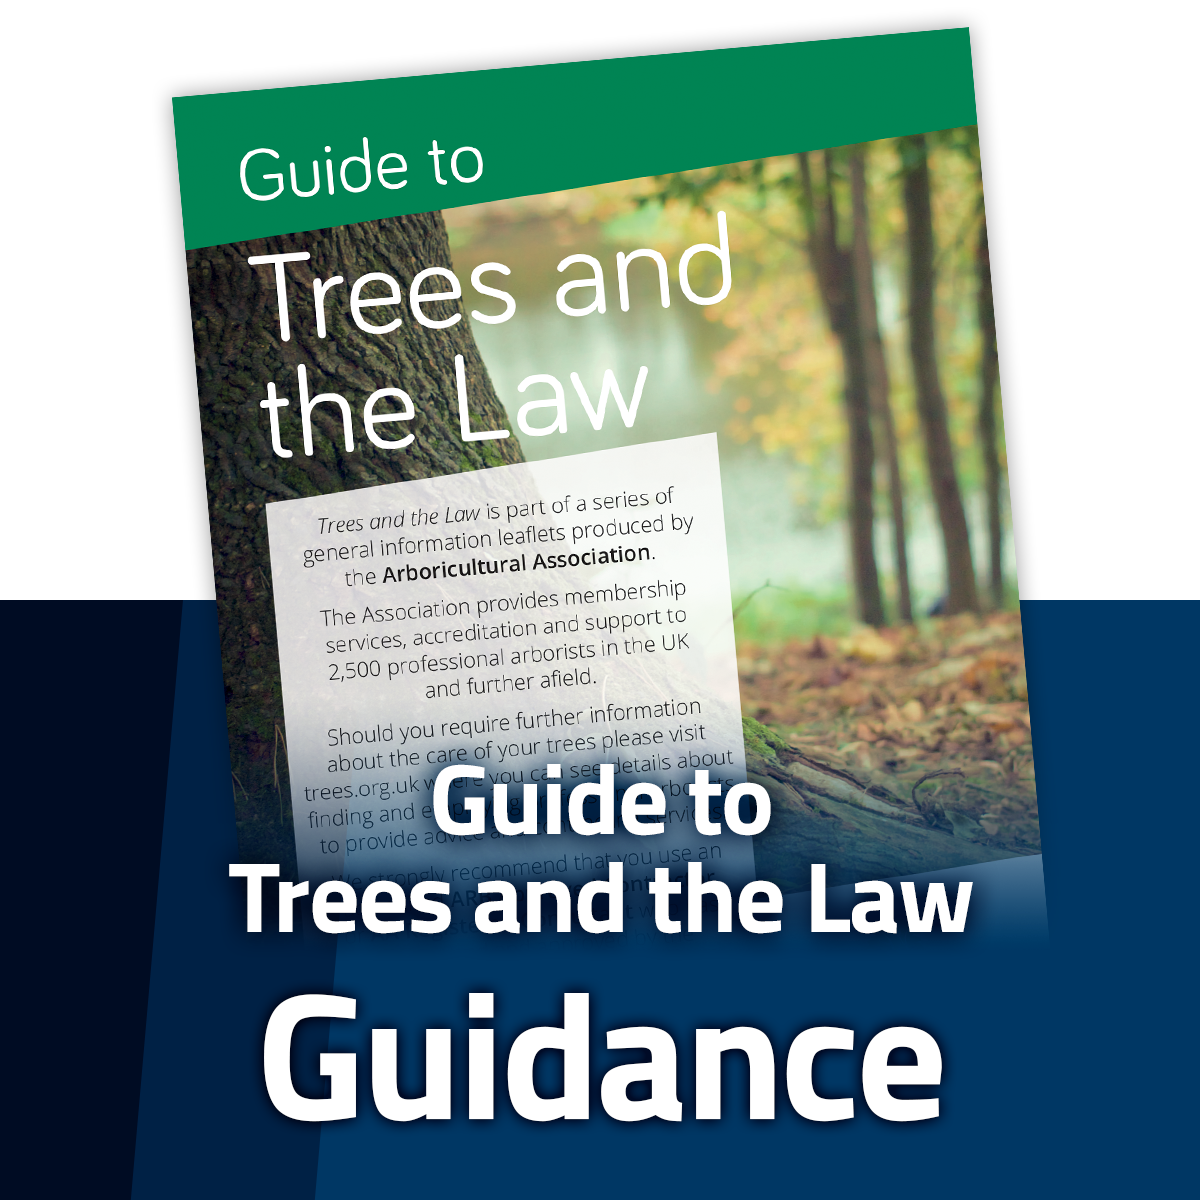 Guide to Trees and the Law